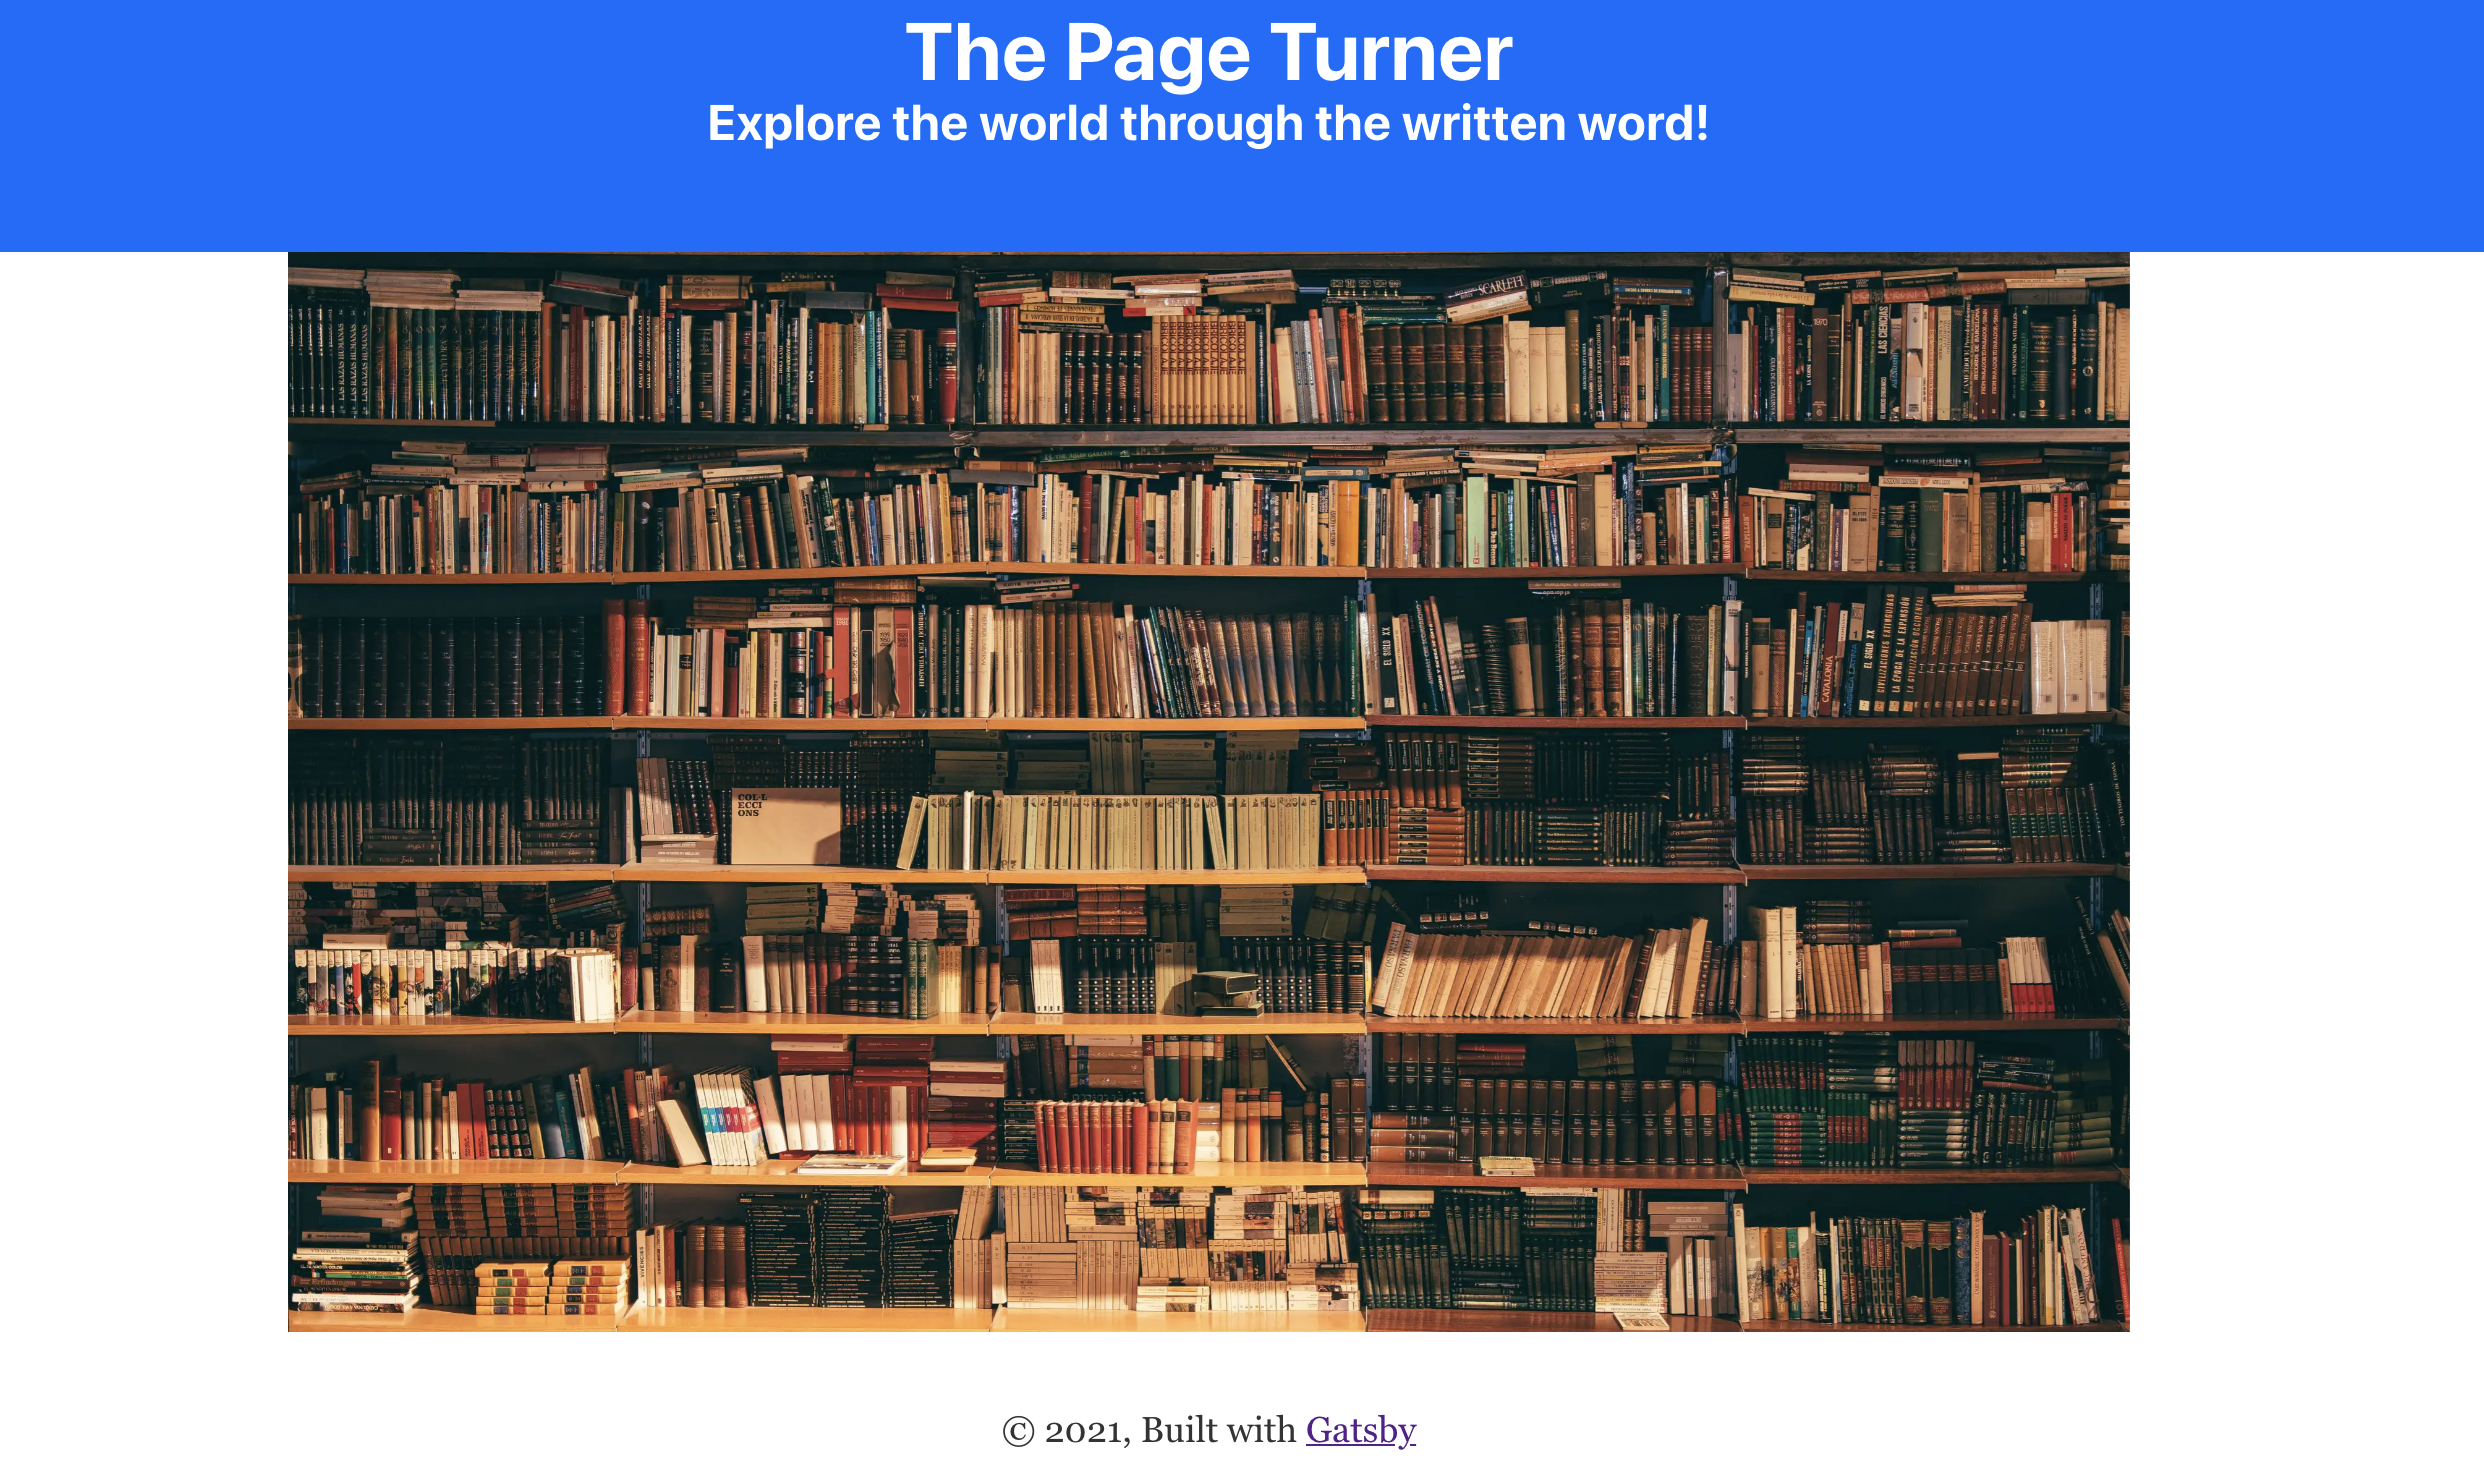 Rendered landing page with bookshelf image.